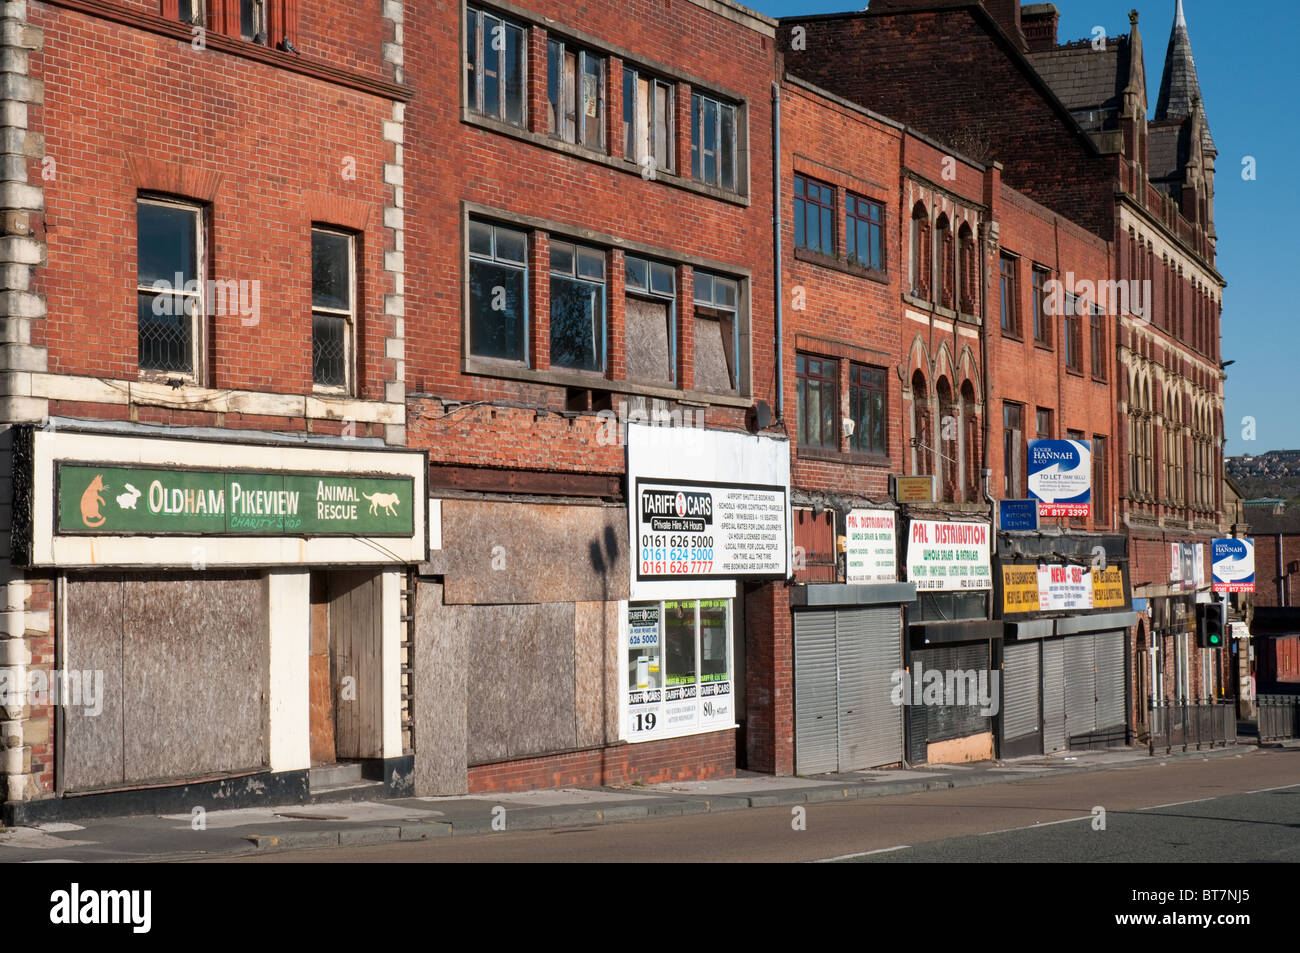 Retail and commercial premises Yorkshire Street,Oldham,Greater Manchester. - Stock Image